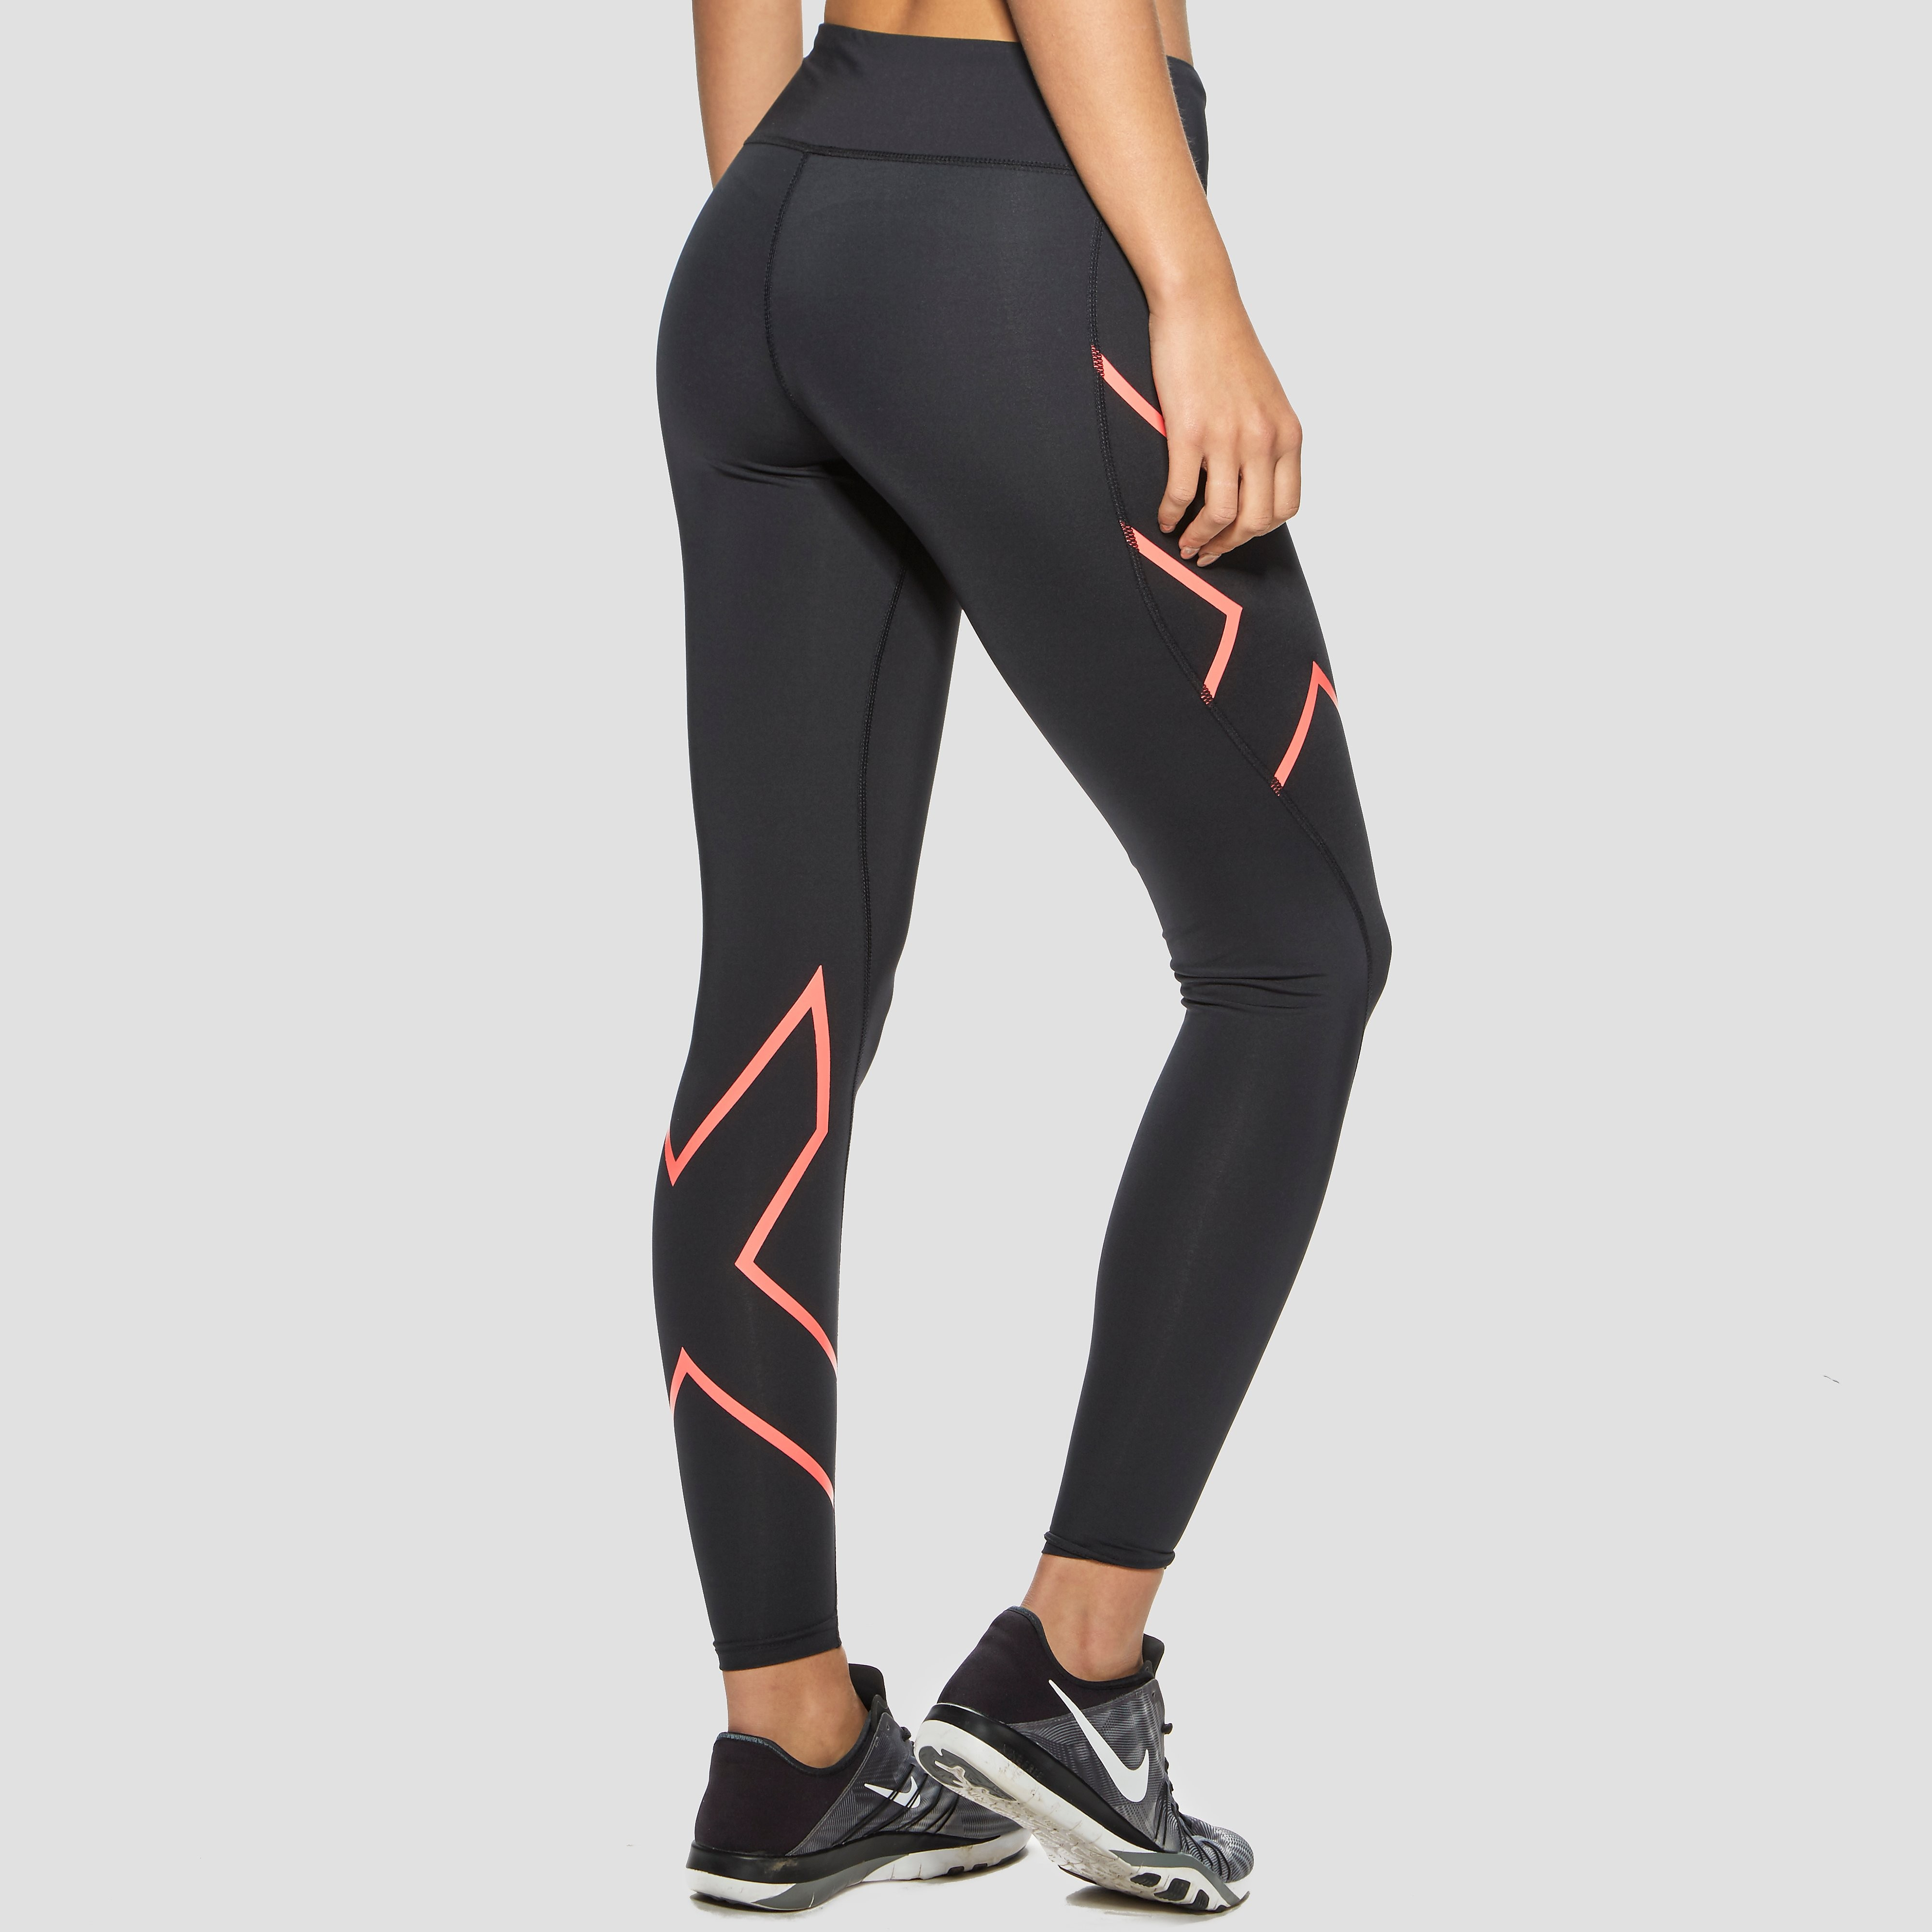 2XU Mid-Rise Women's Compression Tights